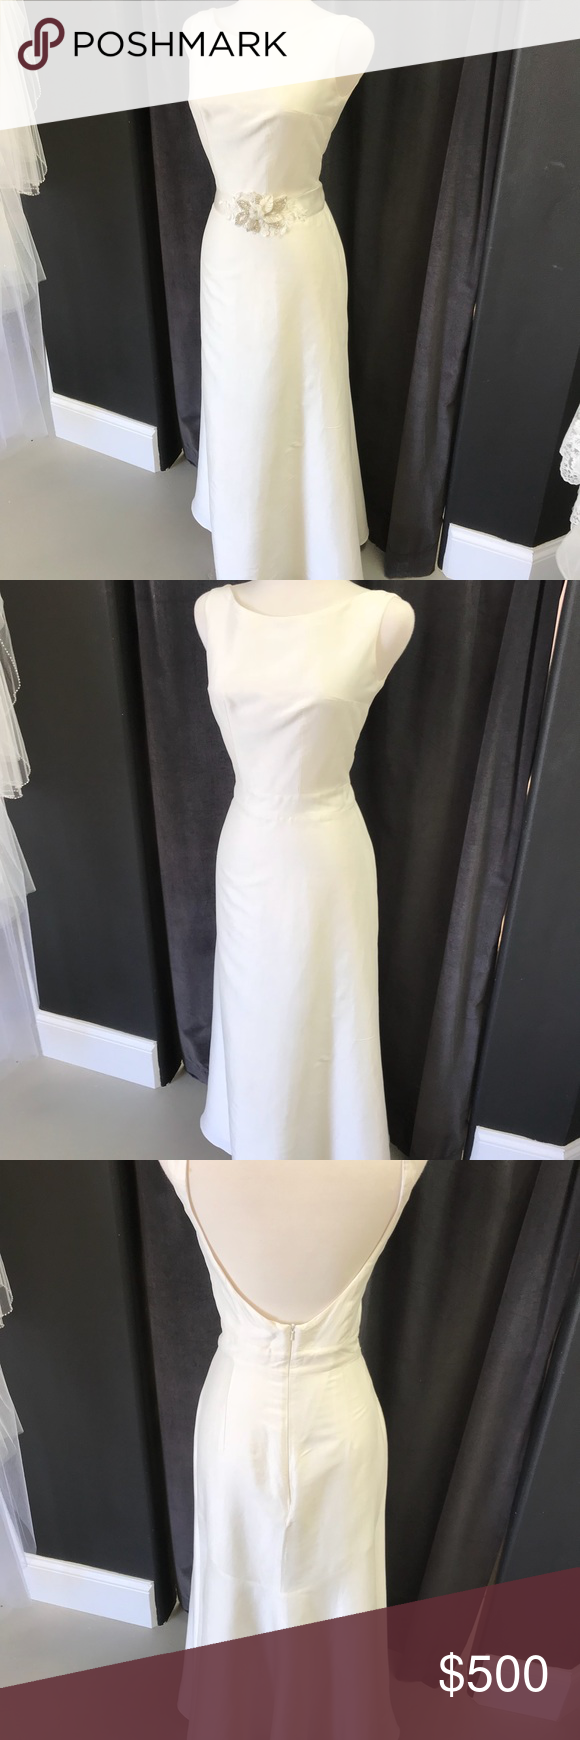 Raw silk wedding dress  Simple Wedding Dress Boat neck low back Color Ivory Material Raw